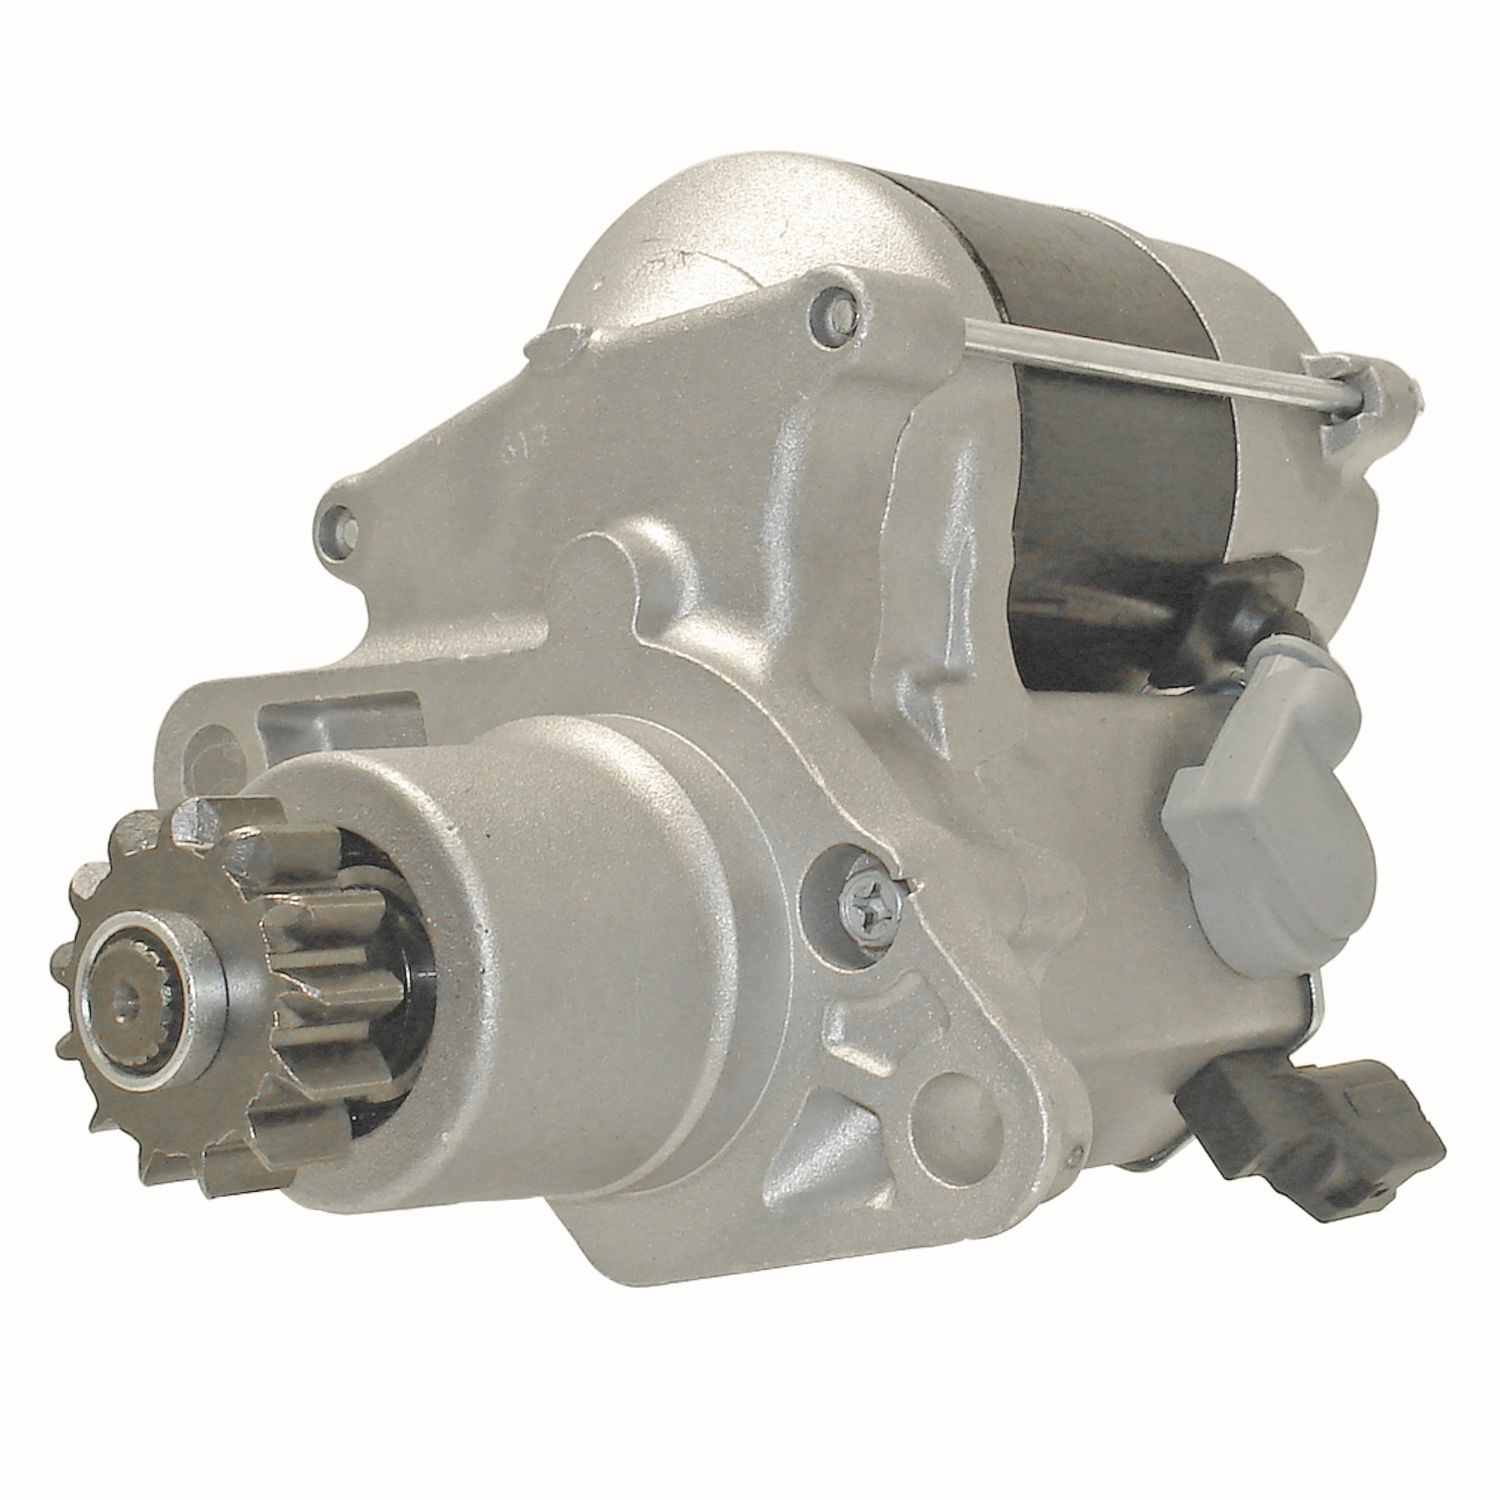 ACDELCO GOLD/PROFESSIONAL - Reman Starter Motor - DCC 336-1711